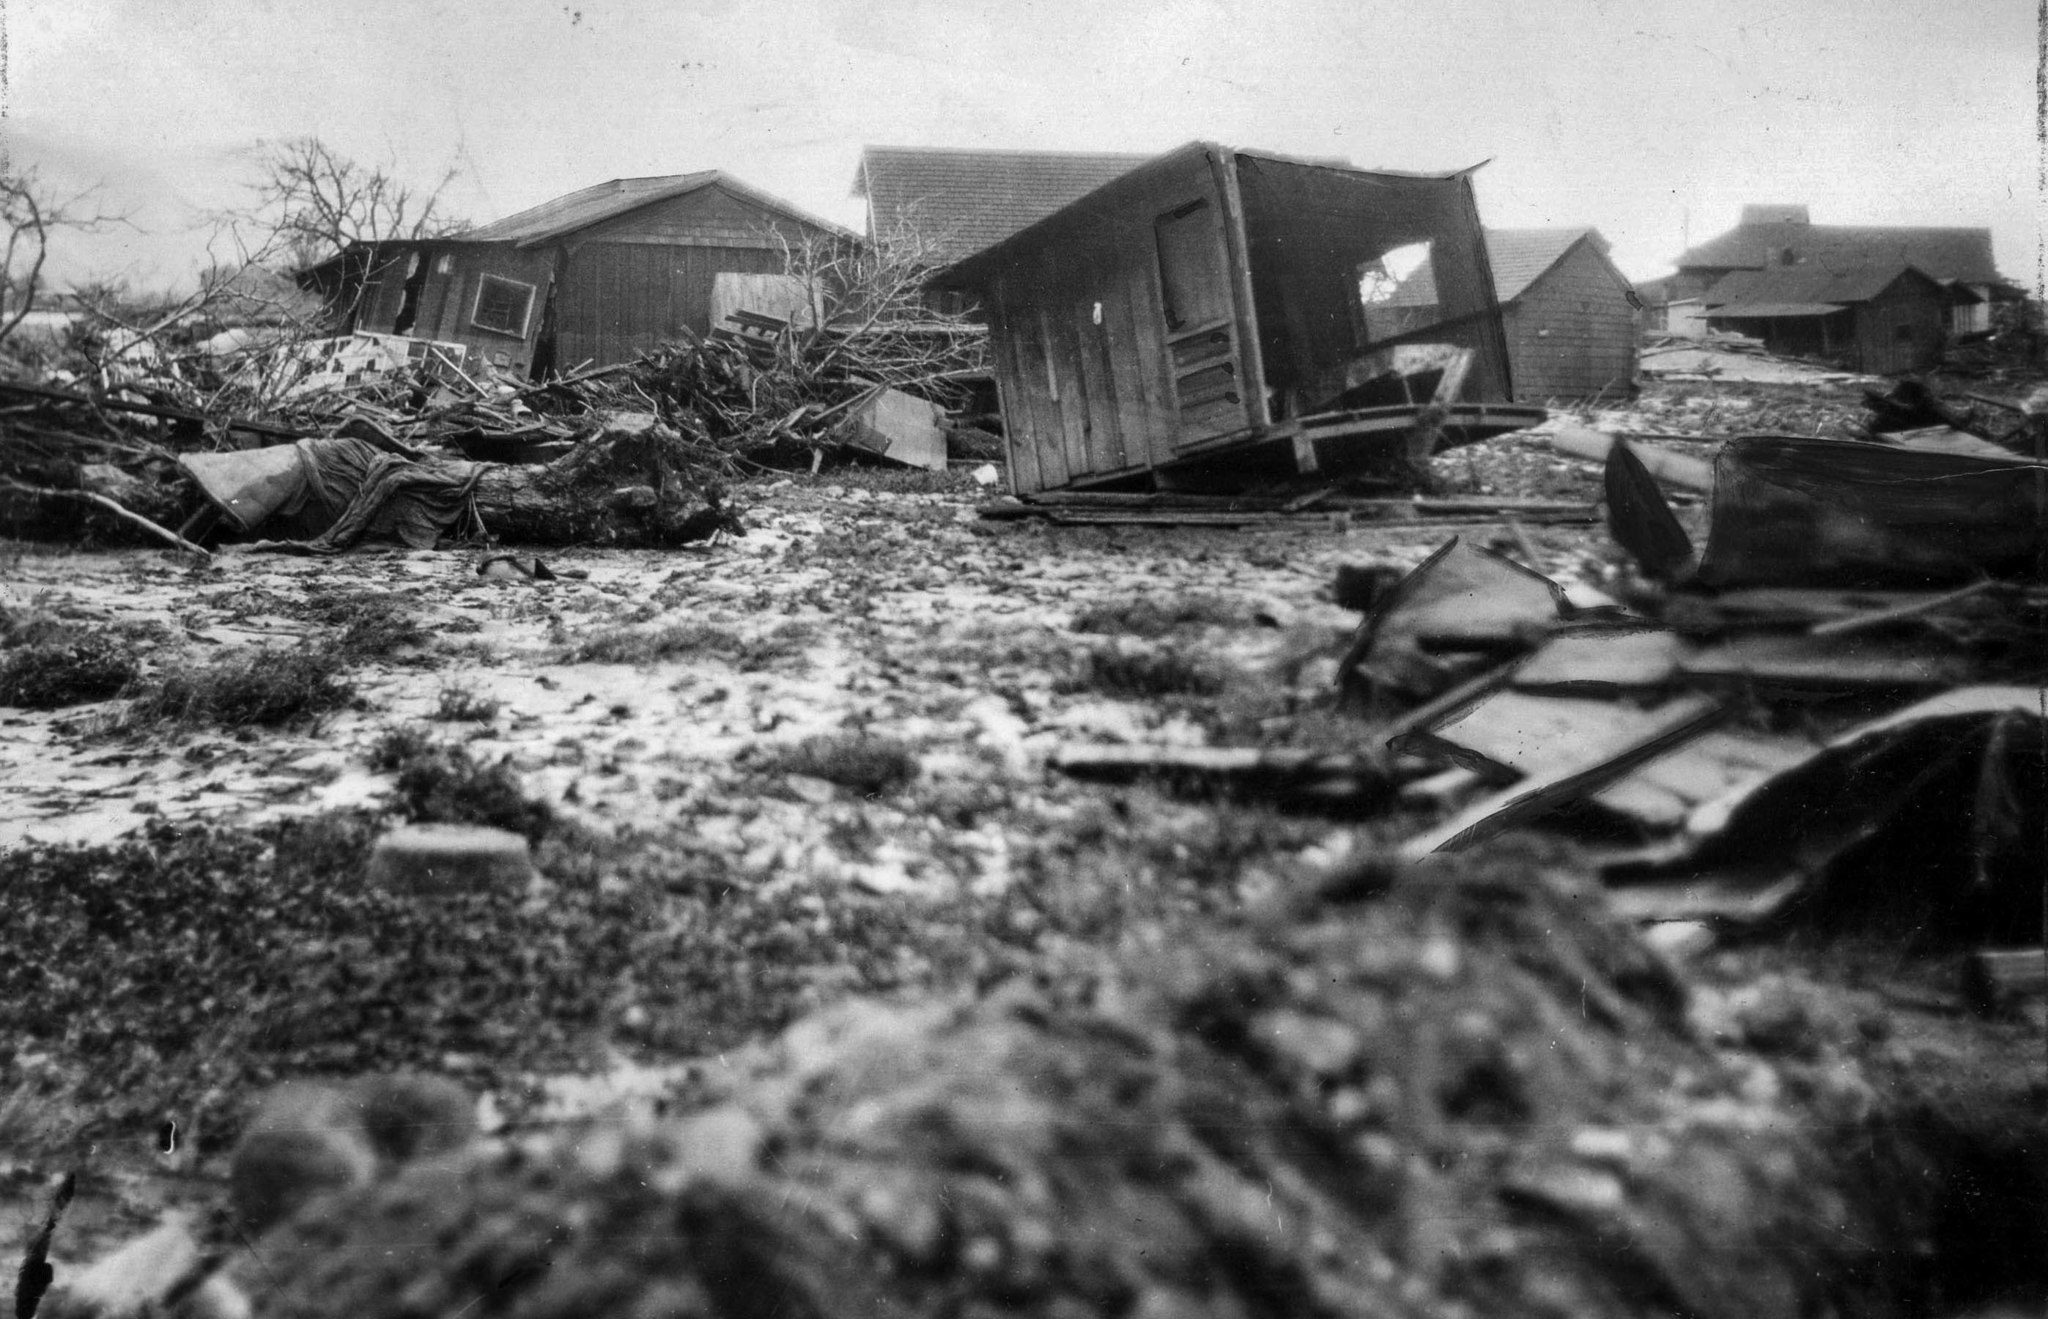 March 14, 1928: Remains of homes in Santa Paula following the collapse of St. Francis Dam. This phot